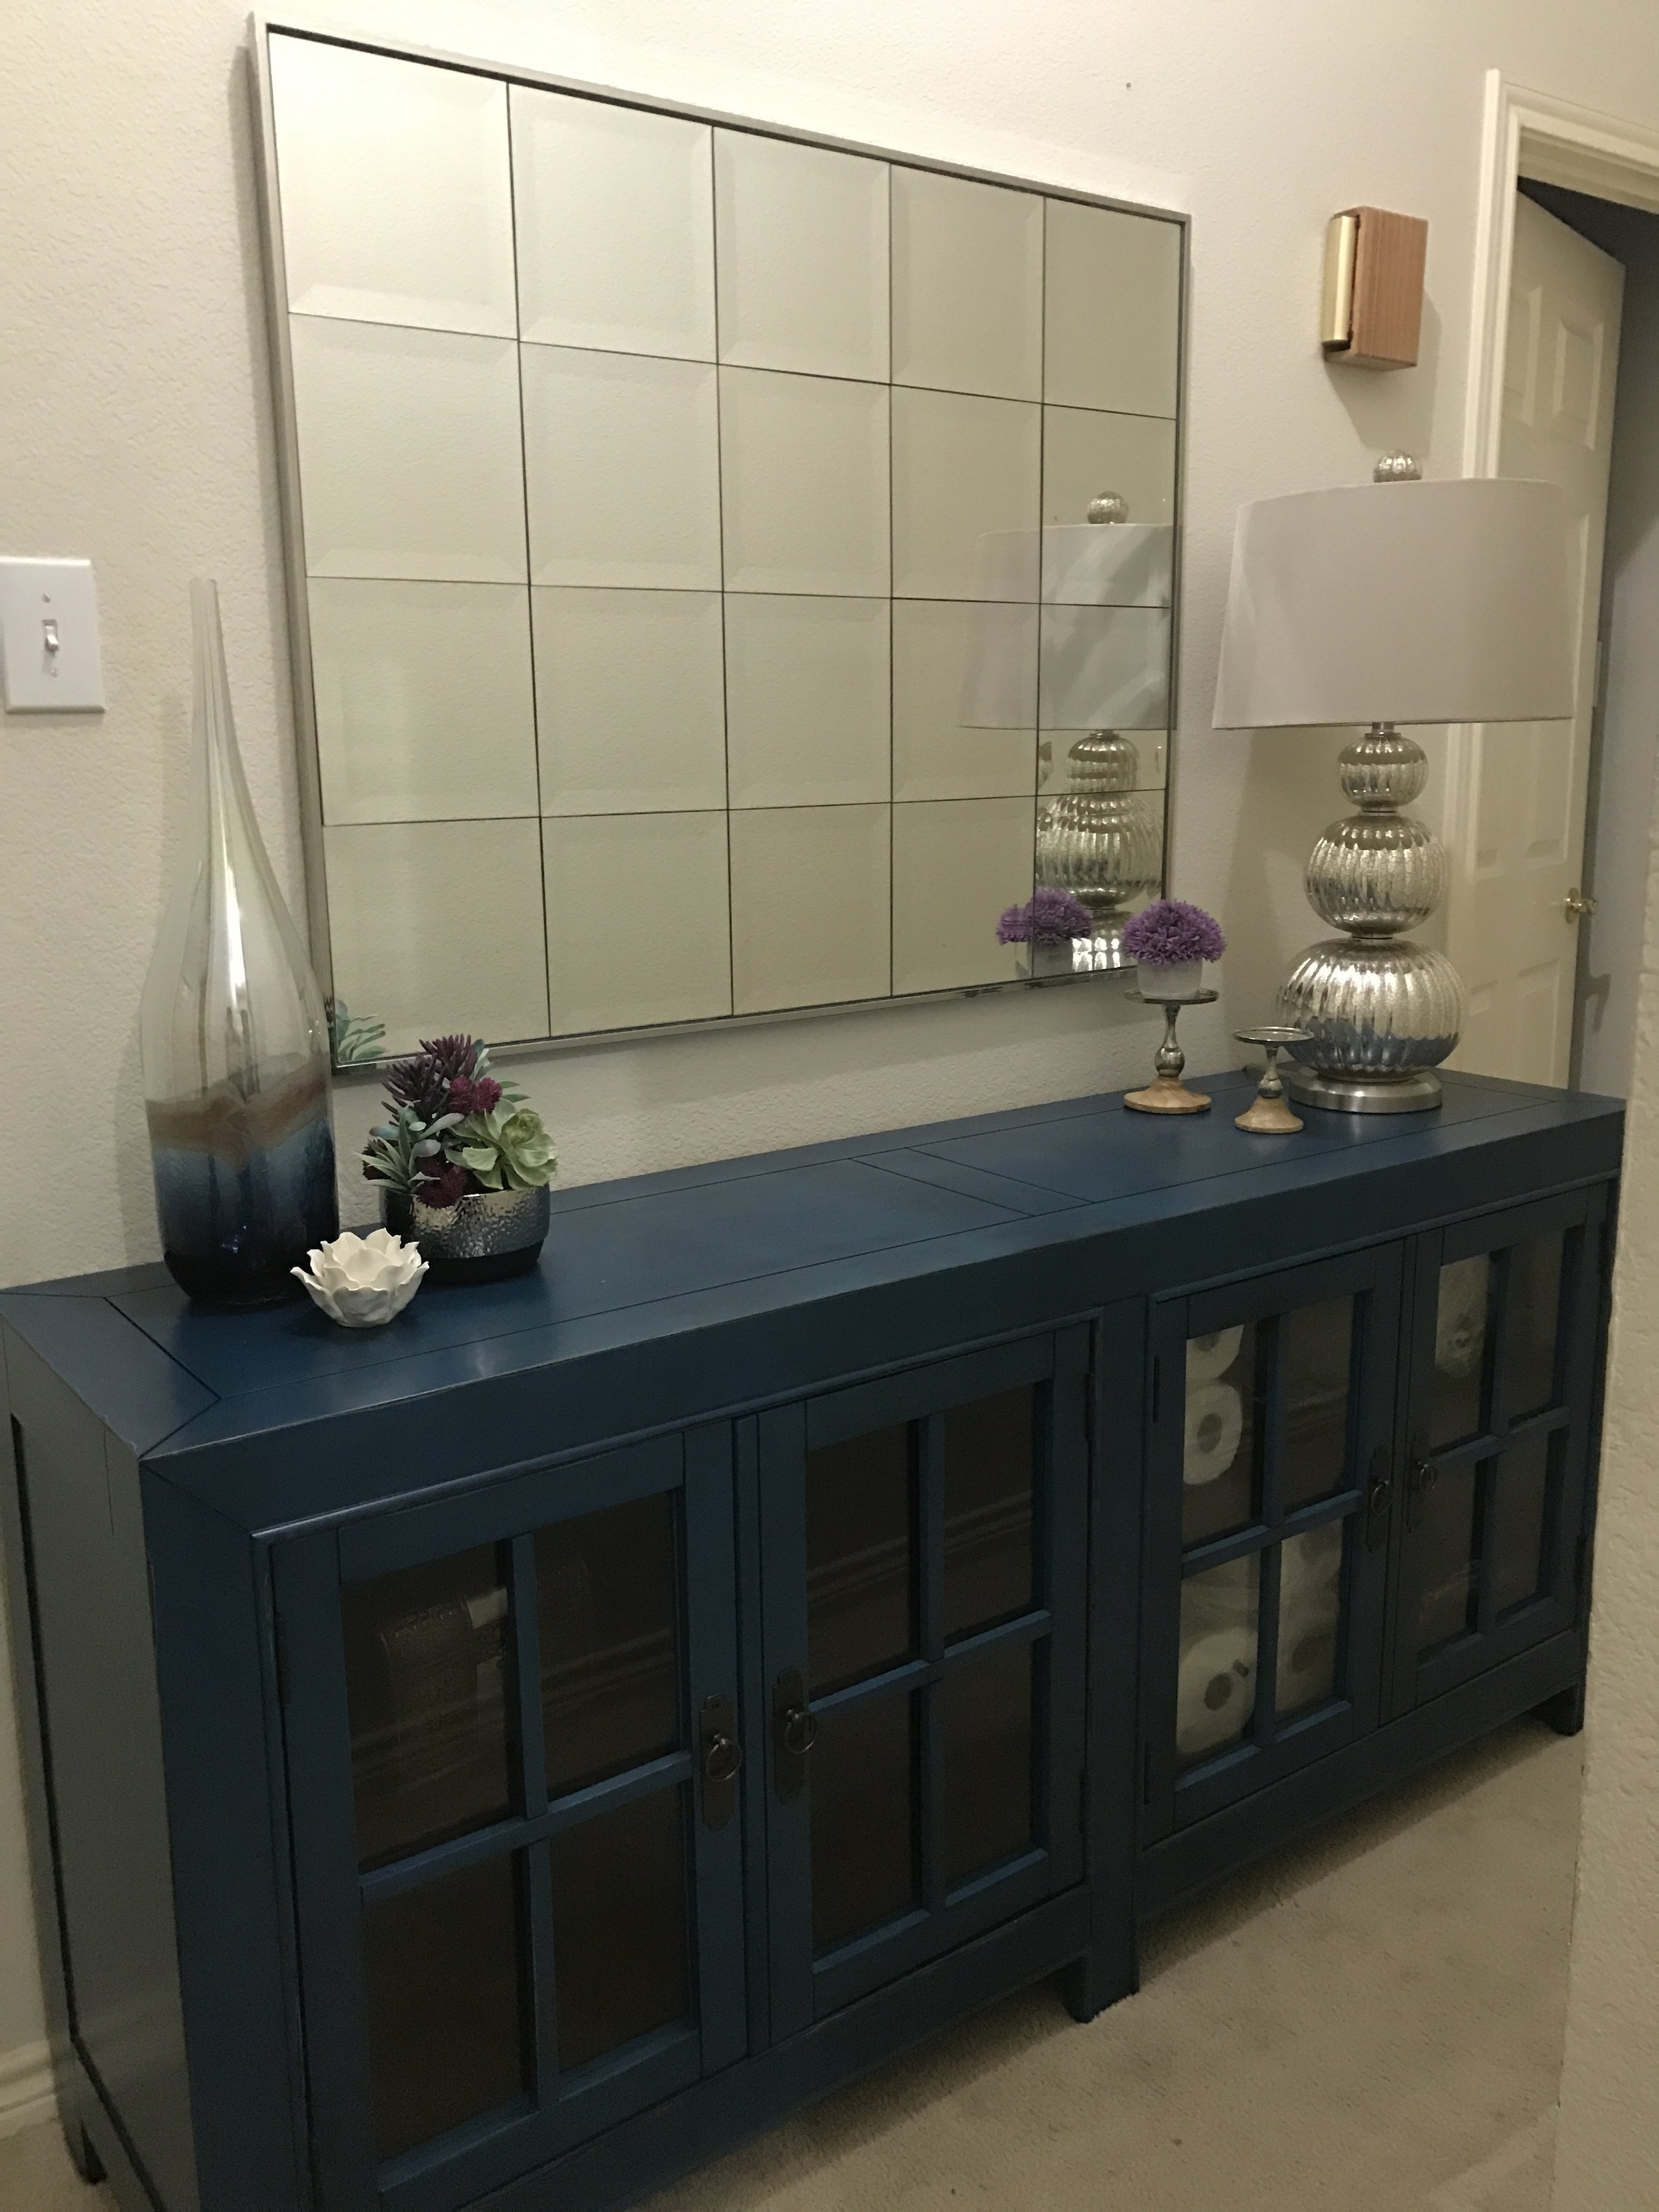 Full service client: hall with storage!